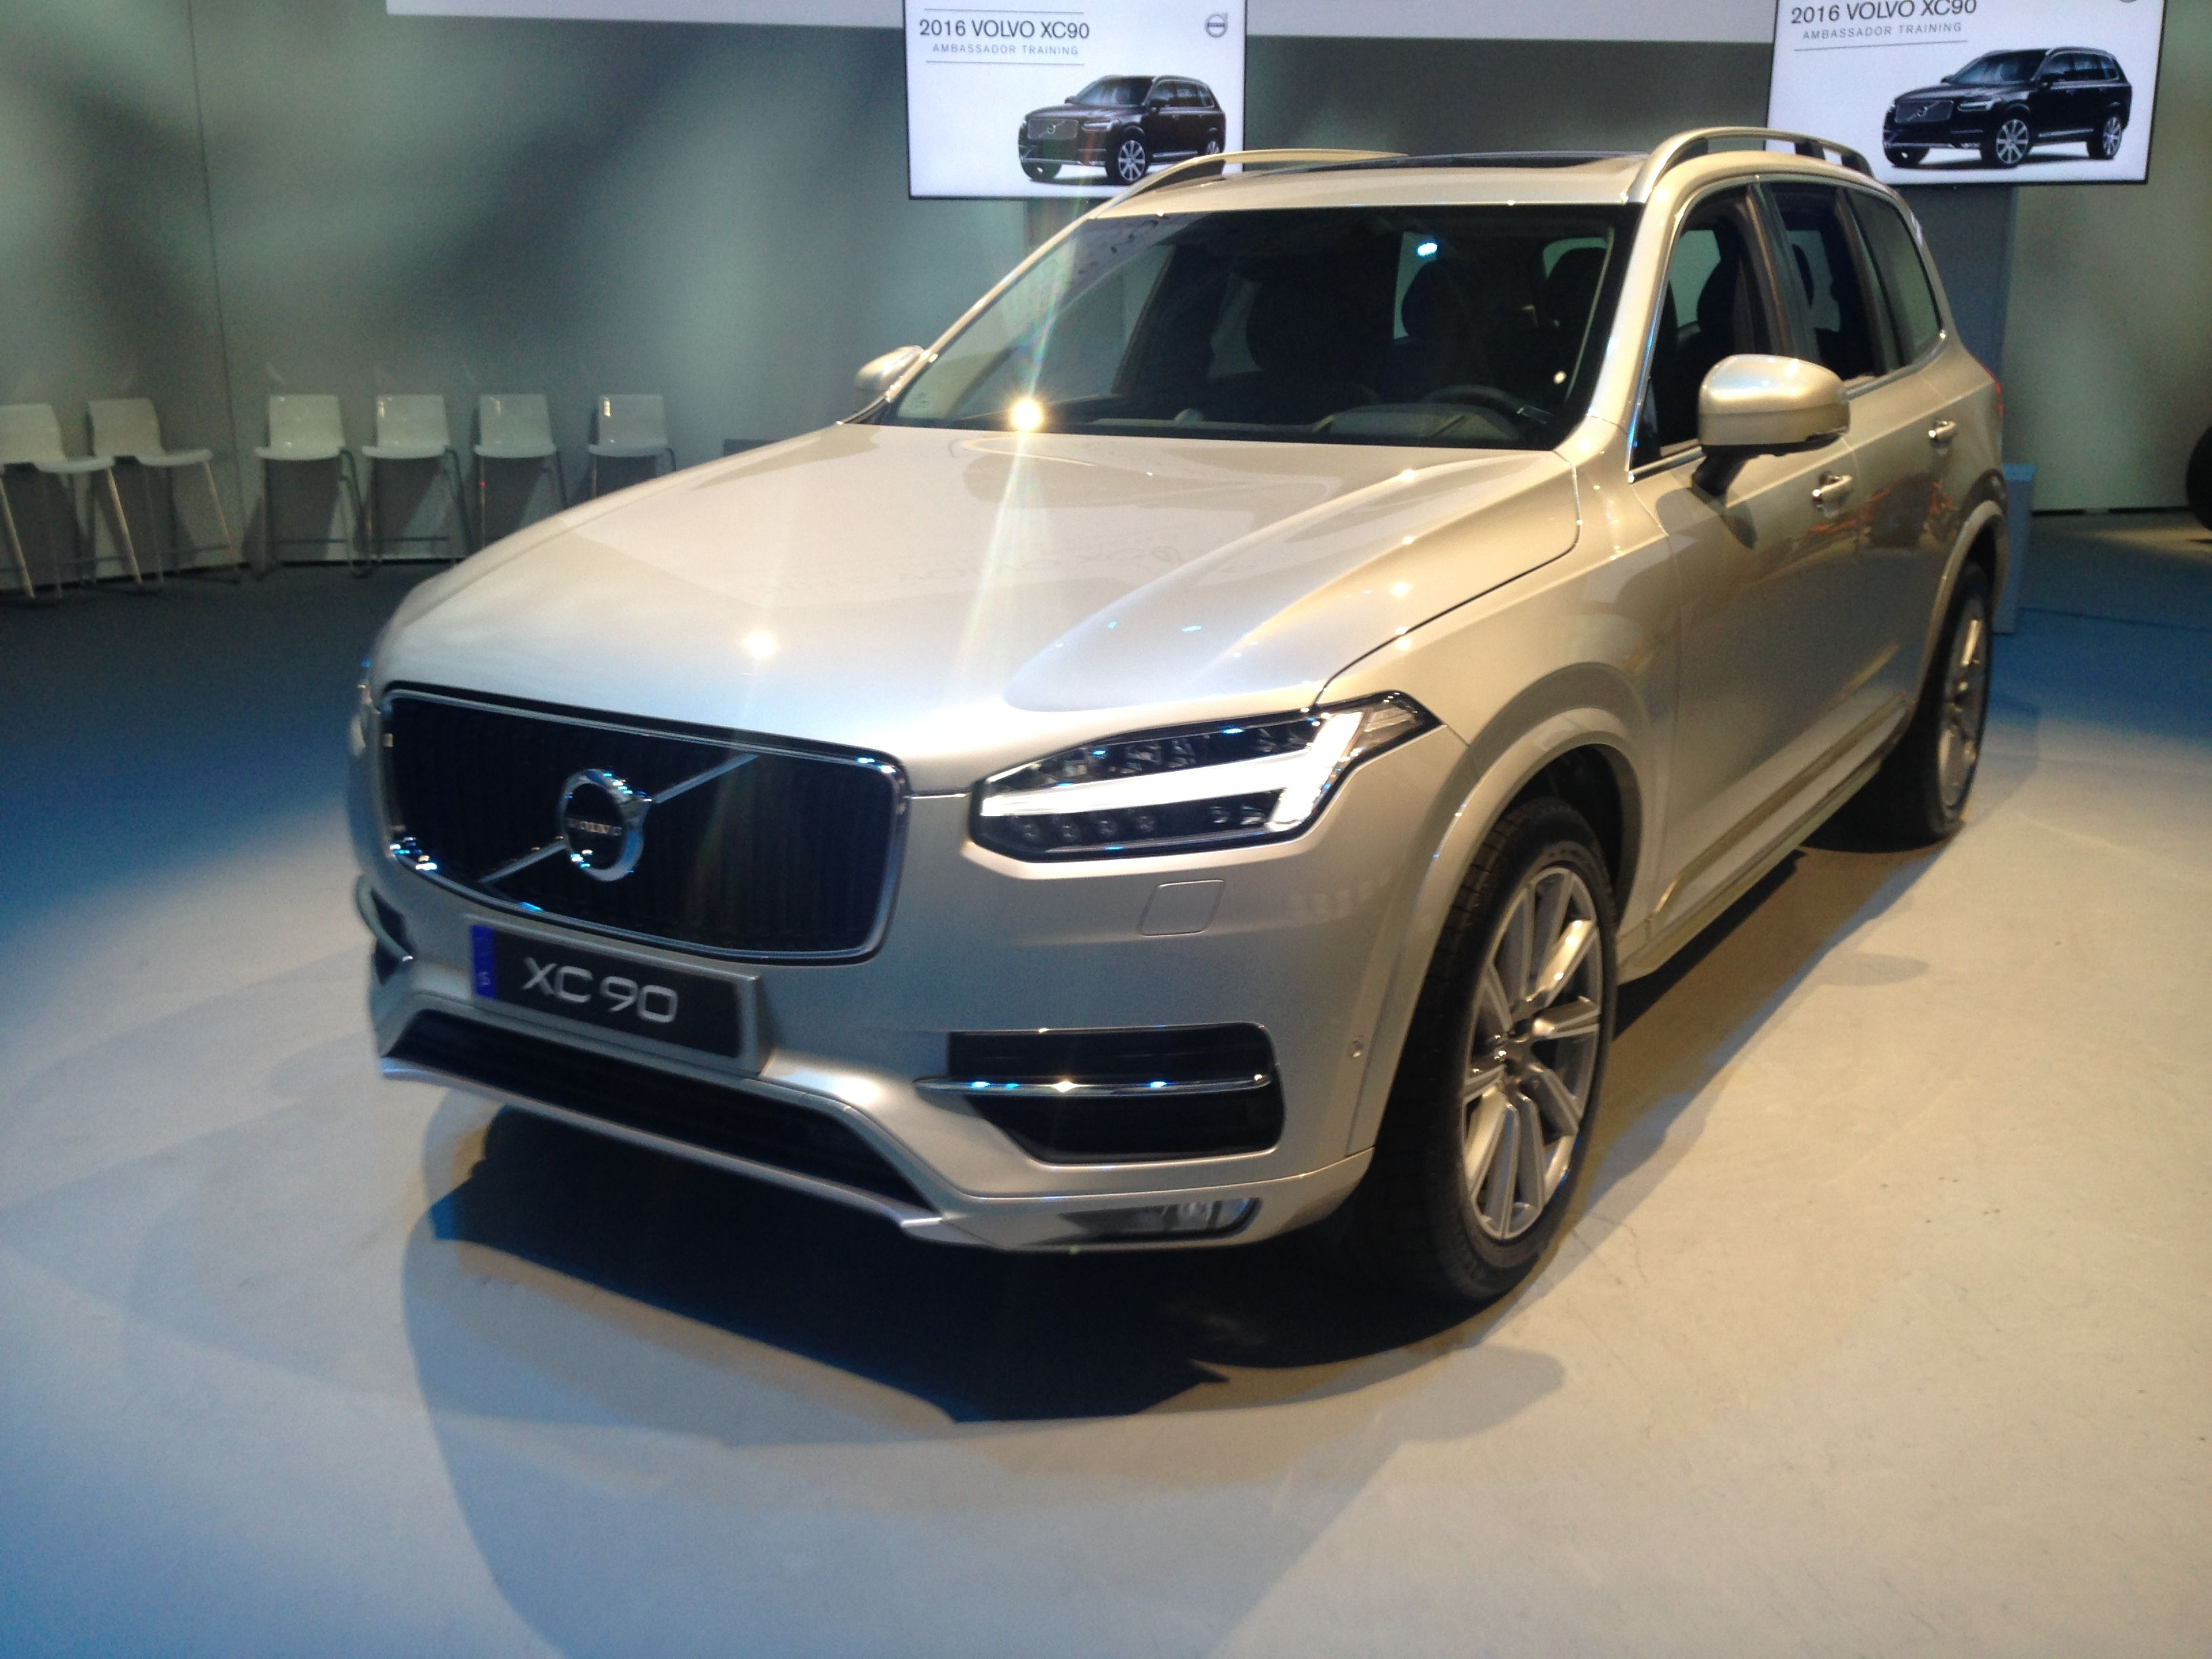 A front end view of the new 2016 volvo xc90 this color is the luminous